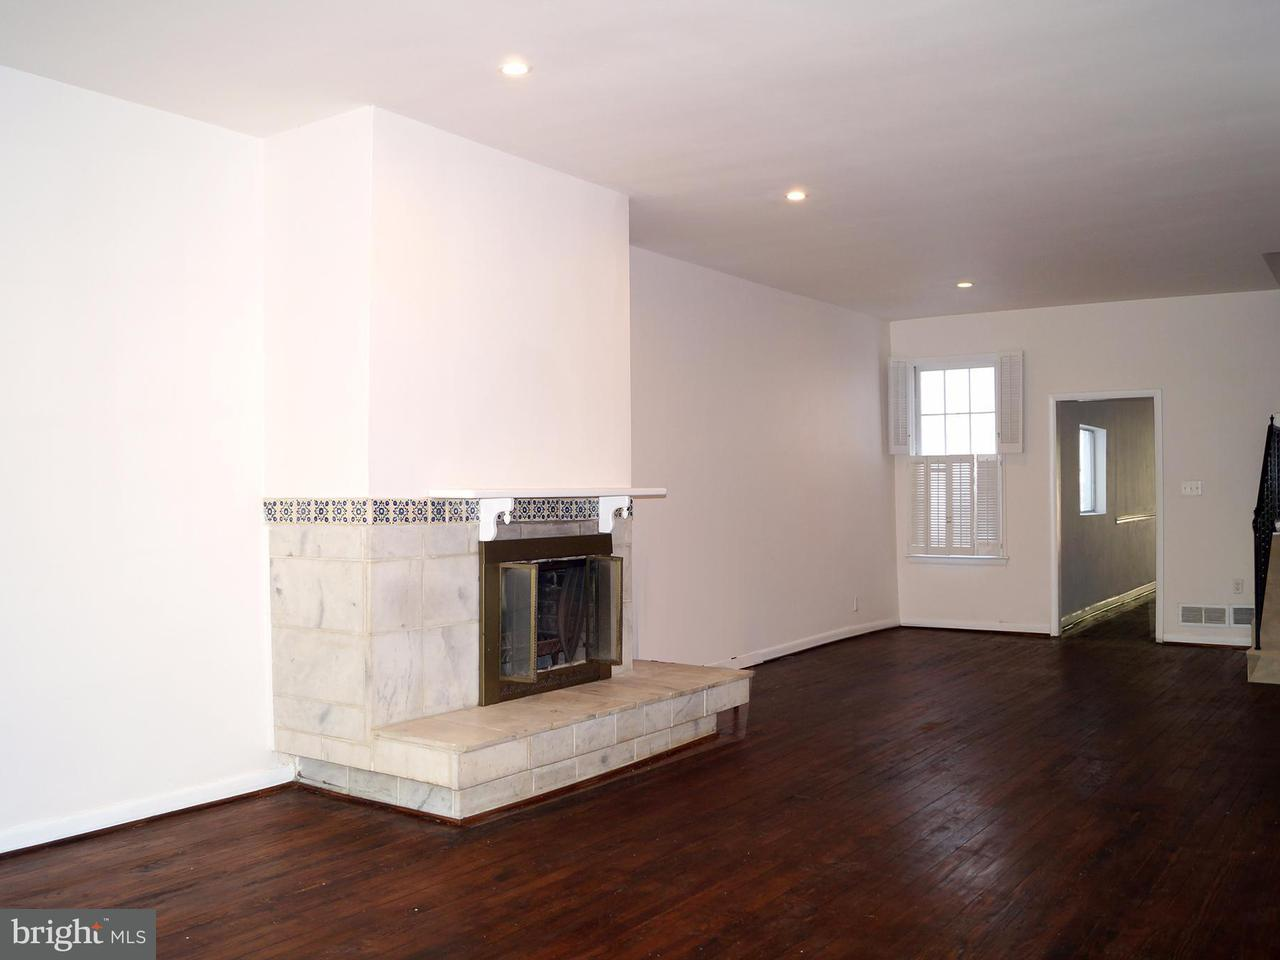 Additional photo for property listing at 435 New Jersey Ave SE  Washington, District Of Columbia 20003 United States